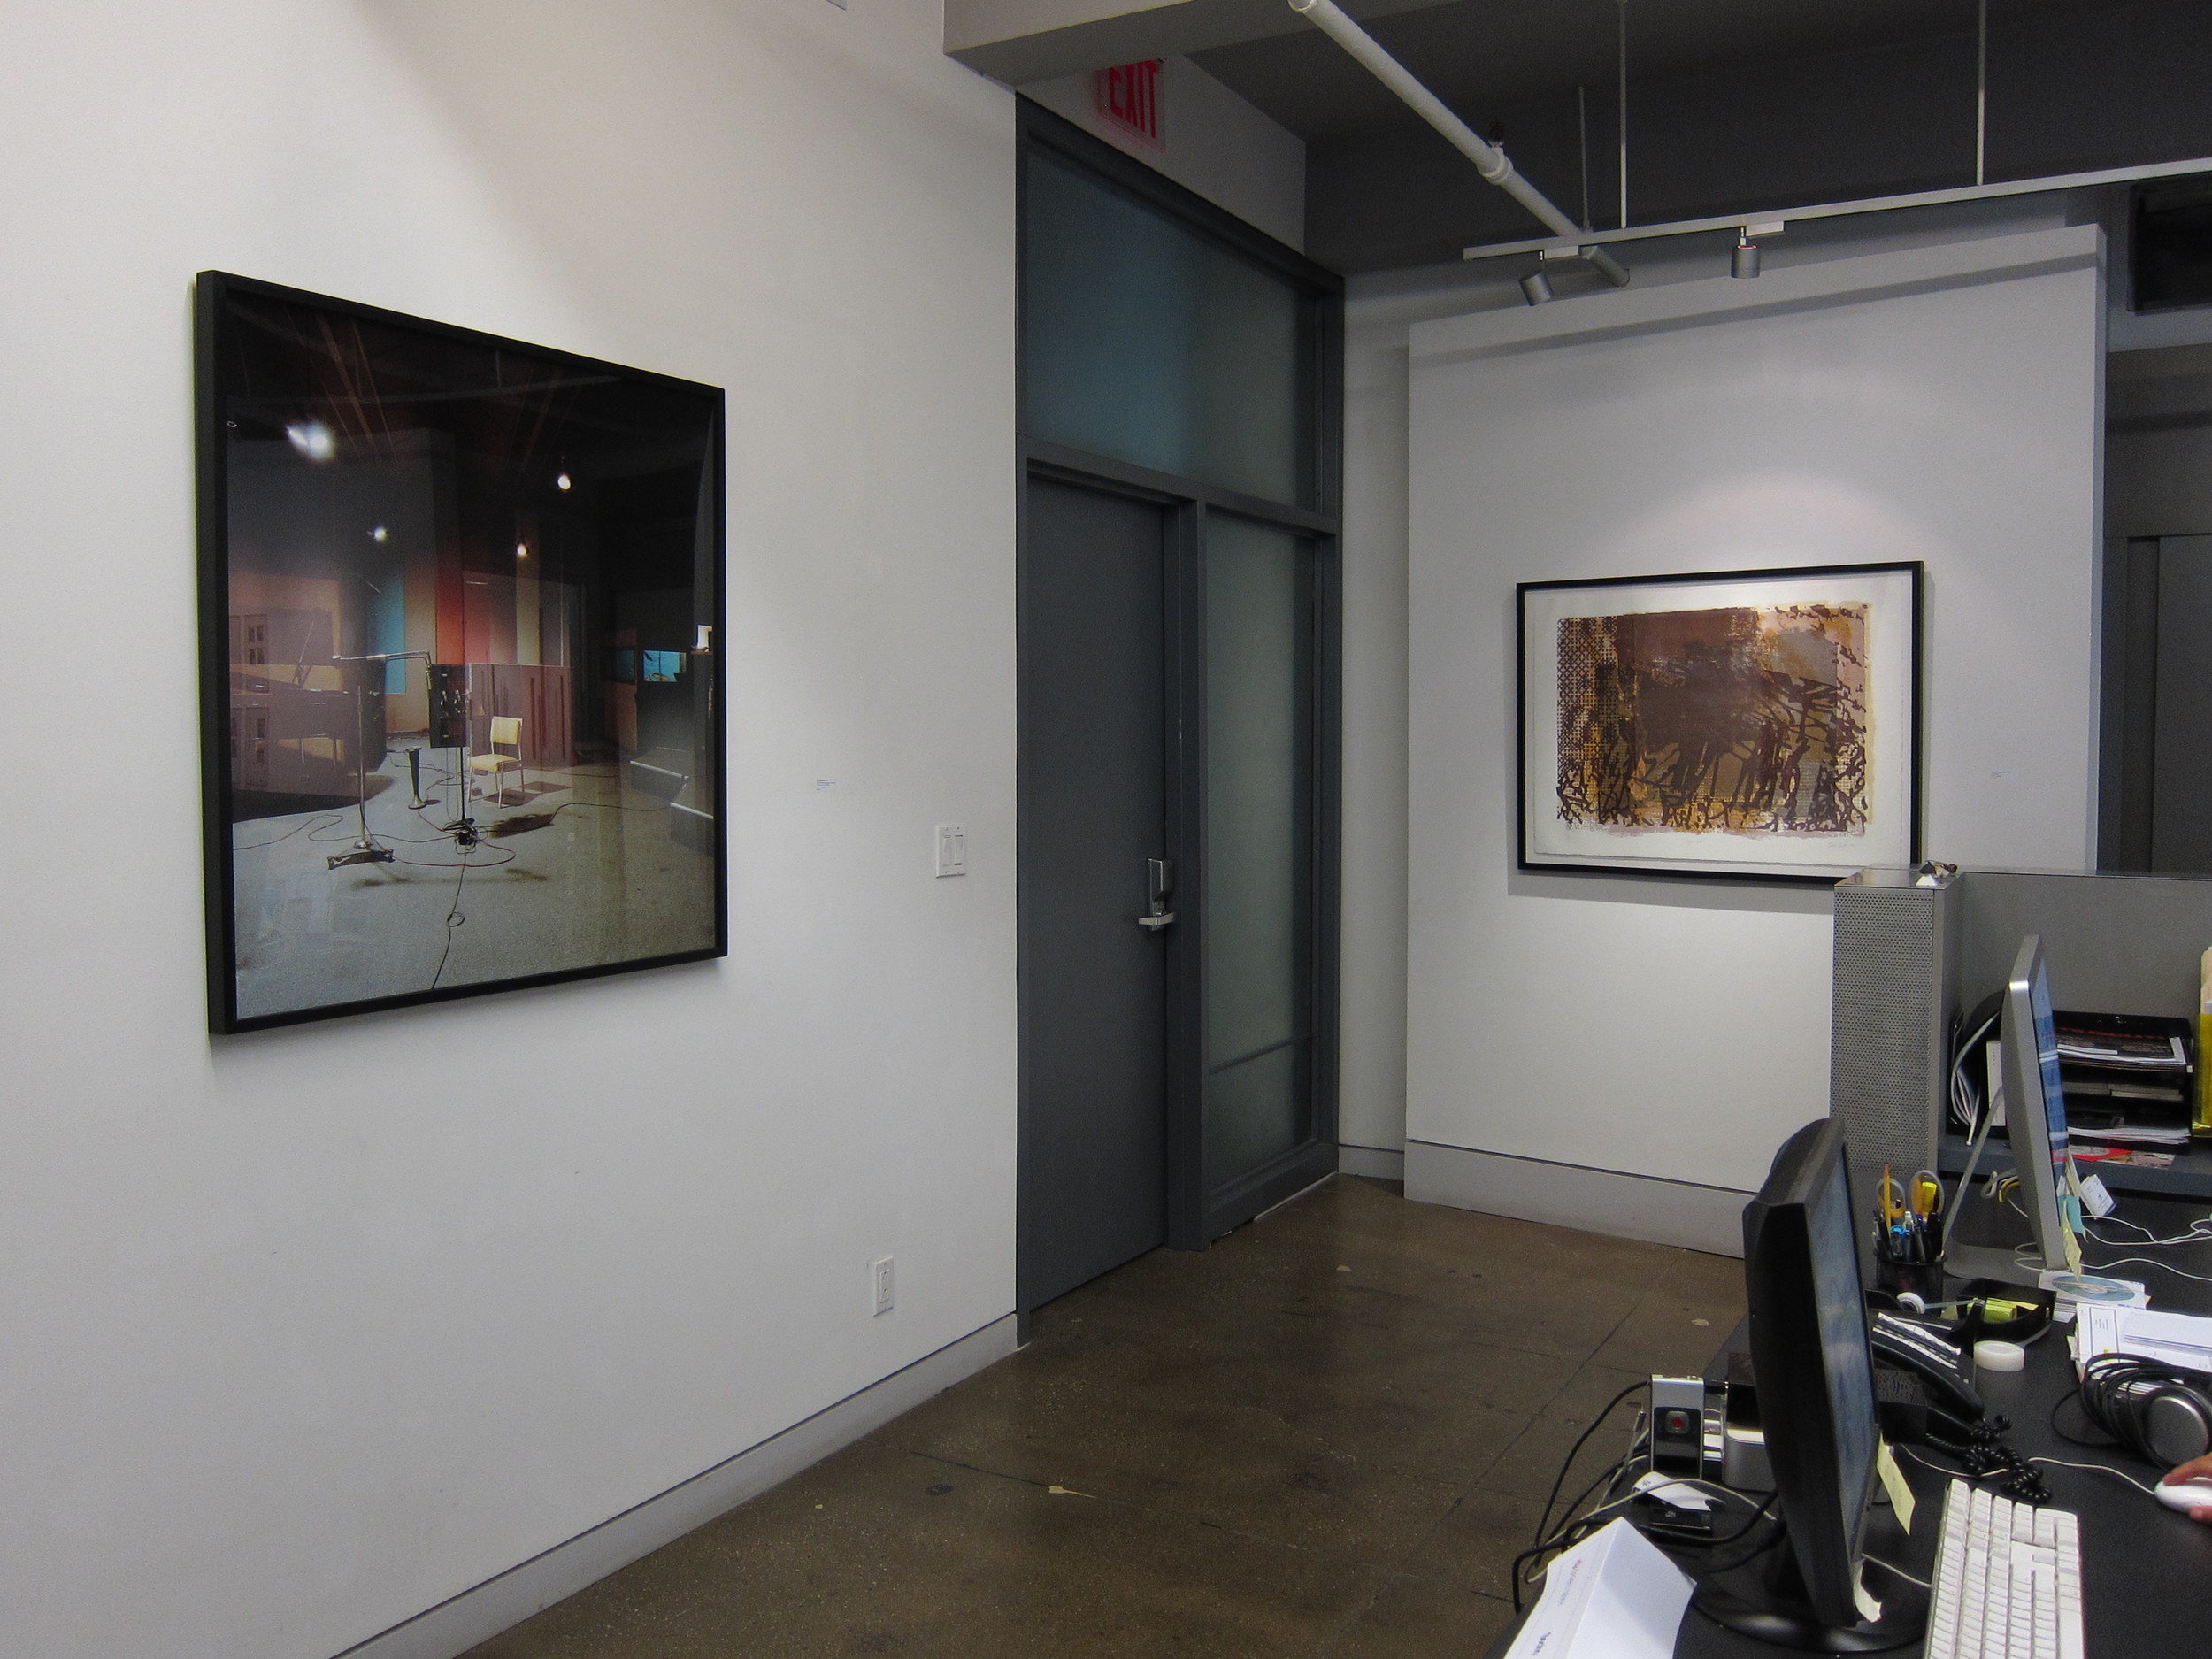 "Office Installation  Left: Rhona Bitner Sam Philips Recording Service, Memphis, TN (from the series Listen) Chromogenic print mounted on aluminum 40"" x 40""  Right: Patricia Leighton Layered Wall 5 color lithograph 35"" x 44.5"" 1996"